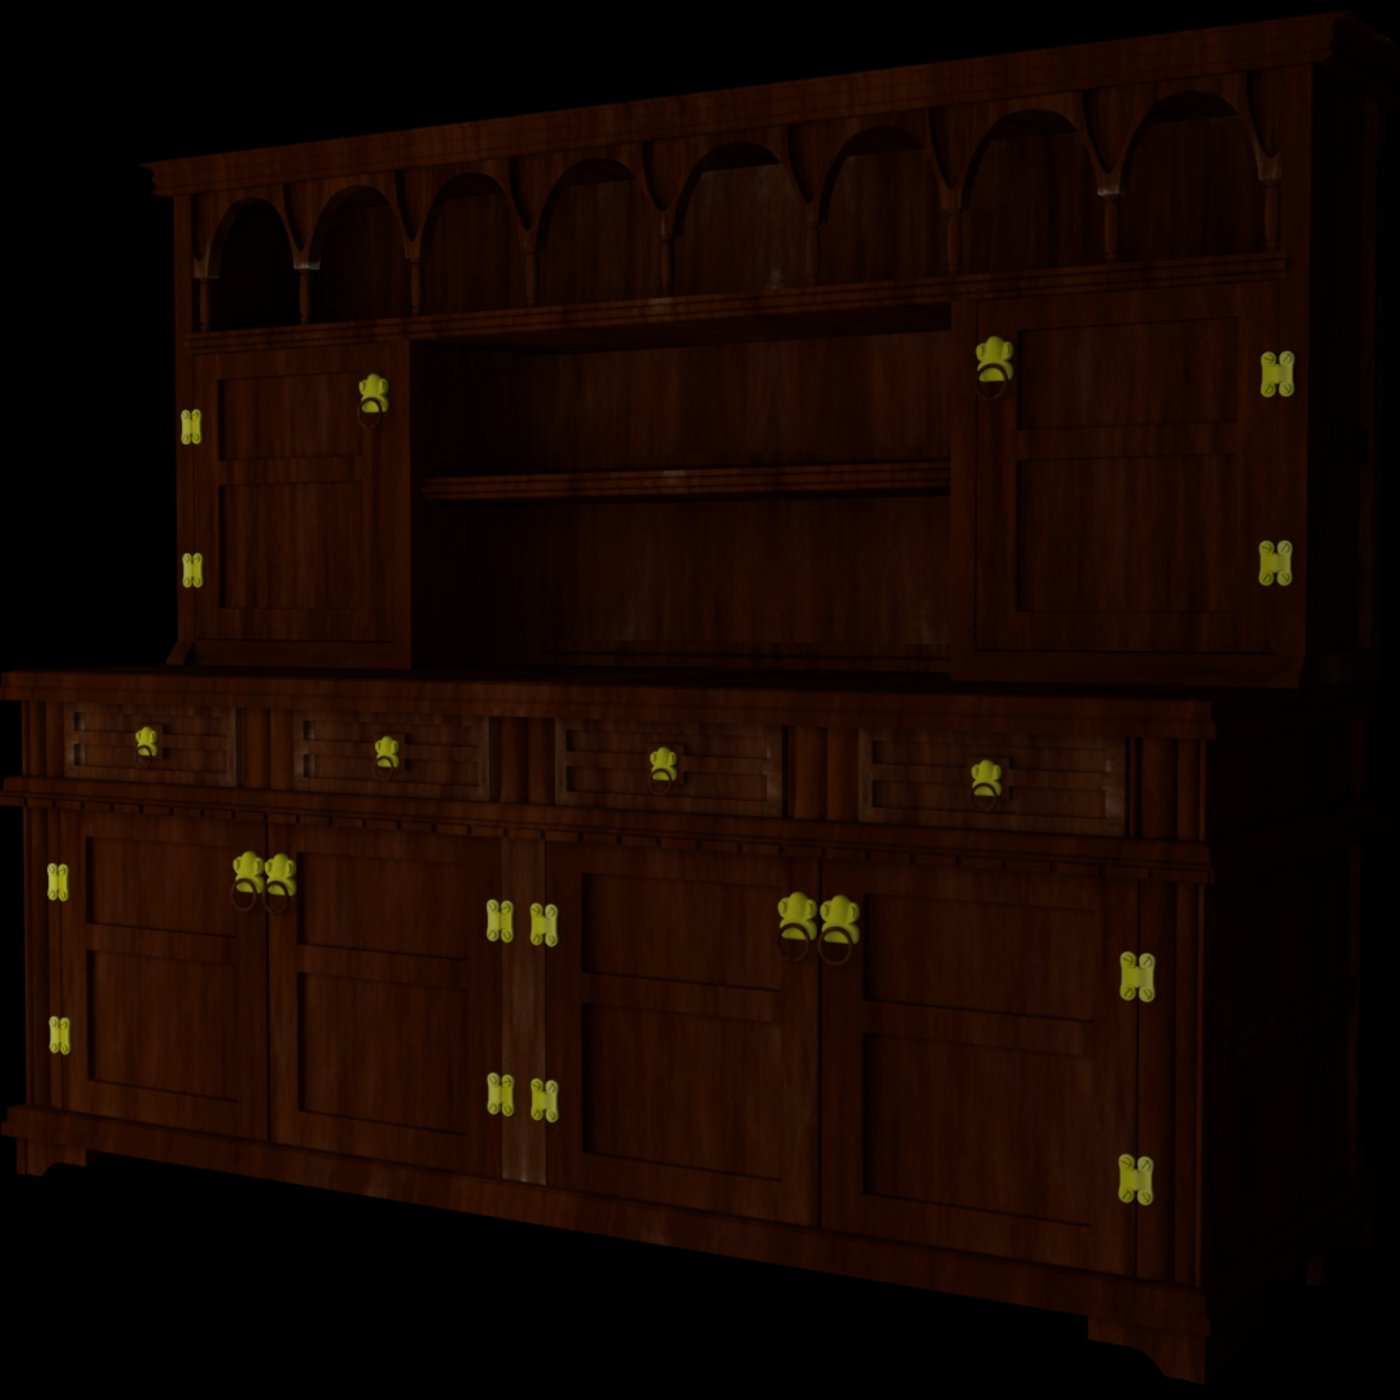 Display Cabinet with UV map and 3 textures